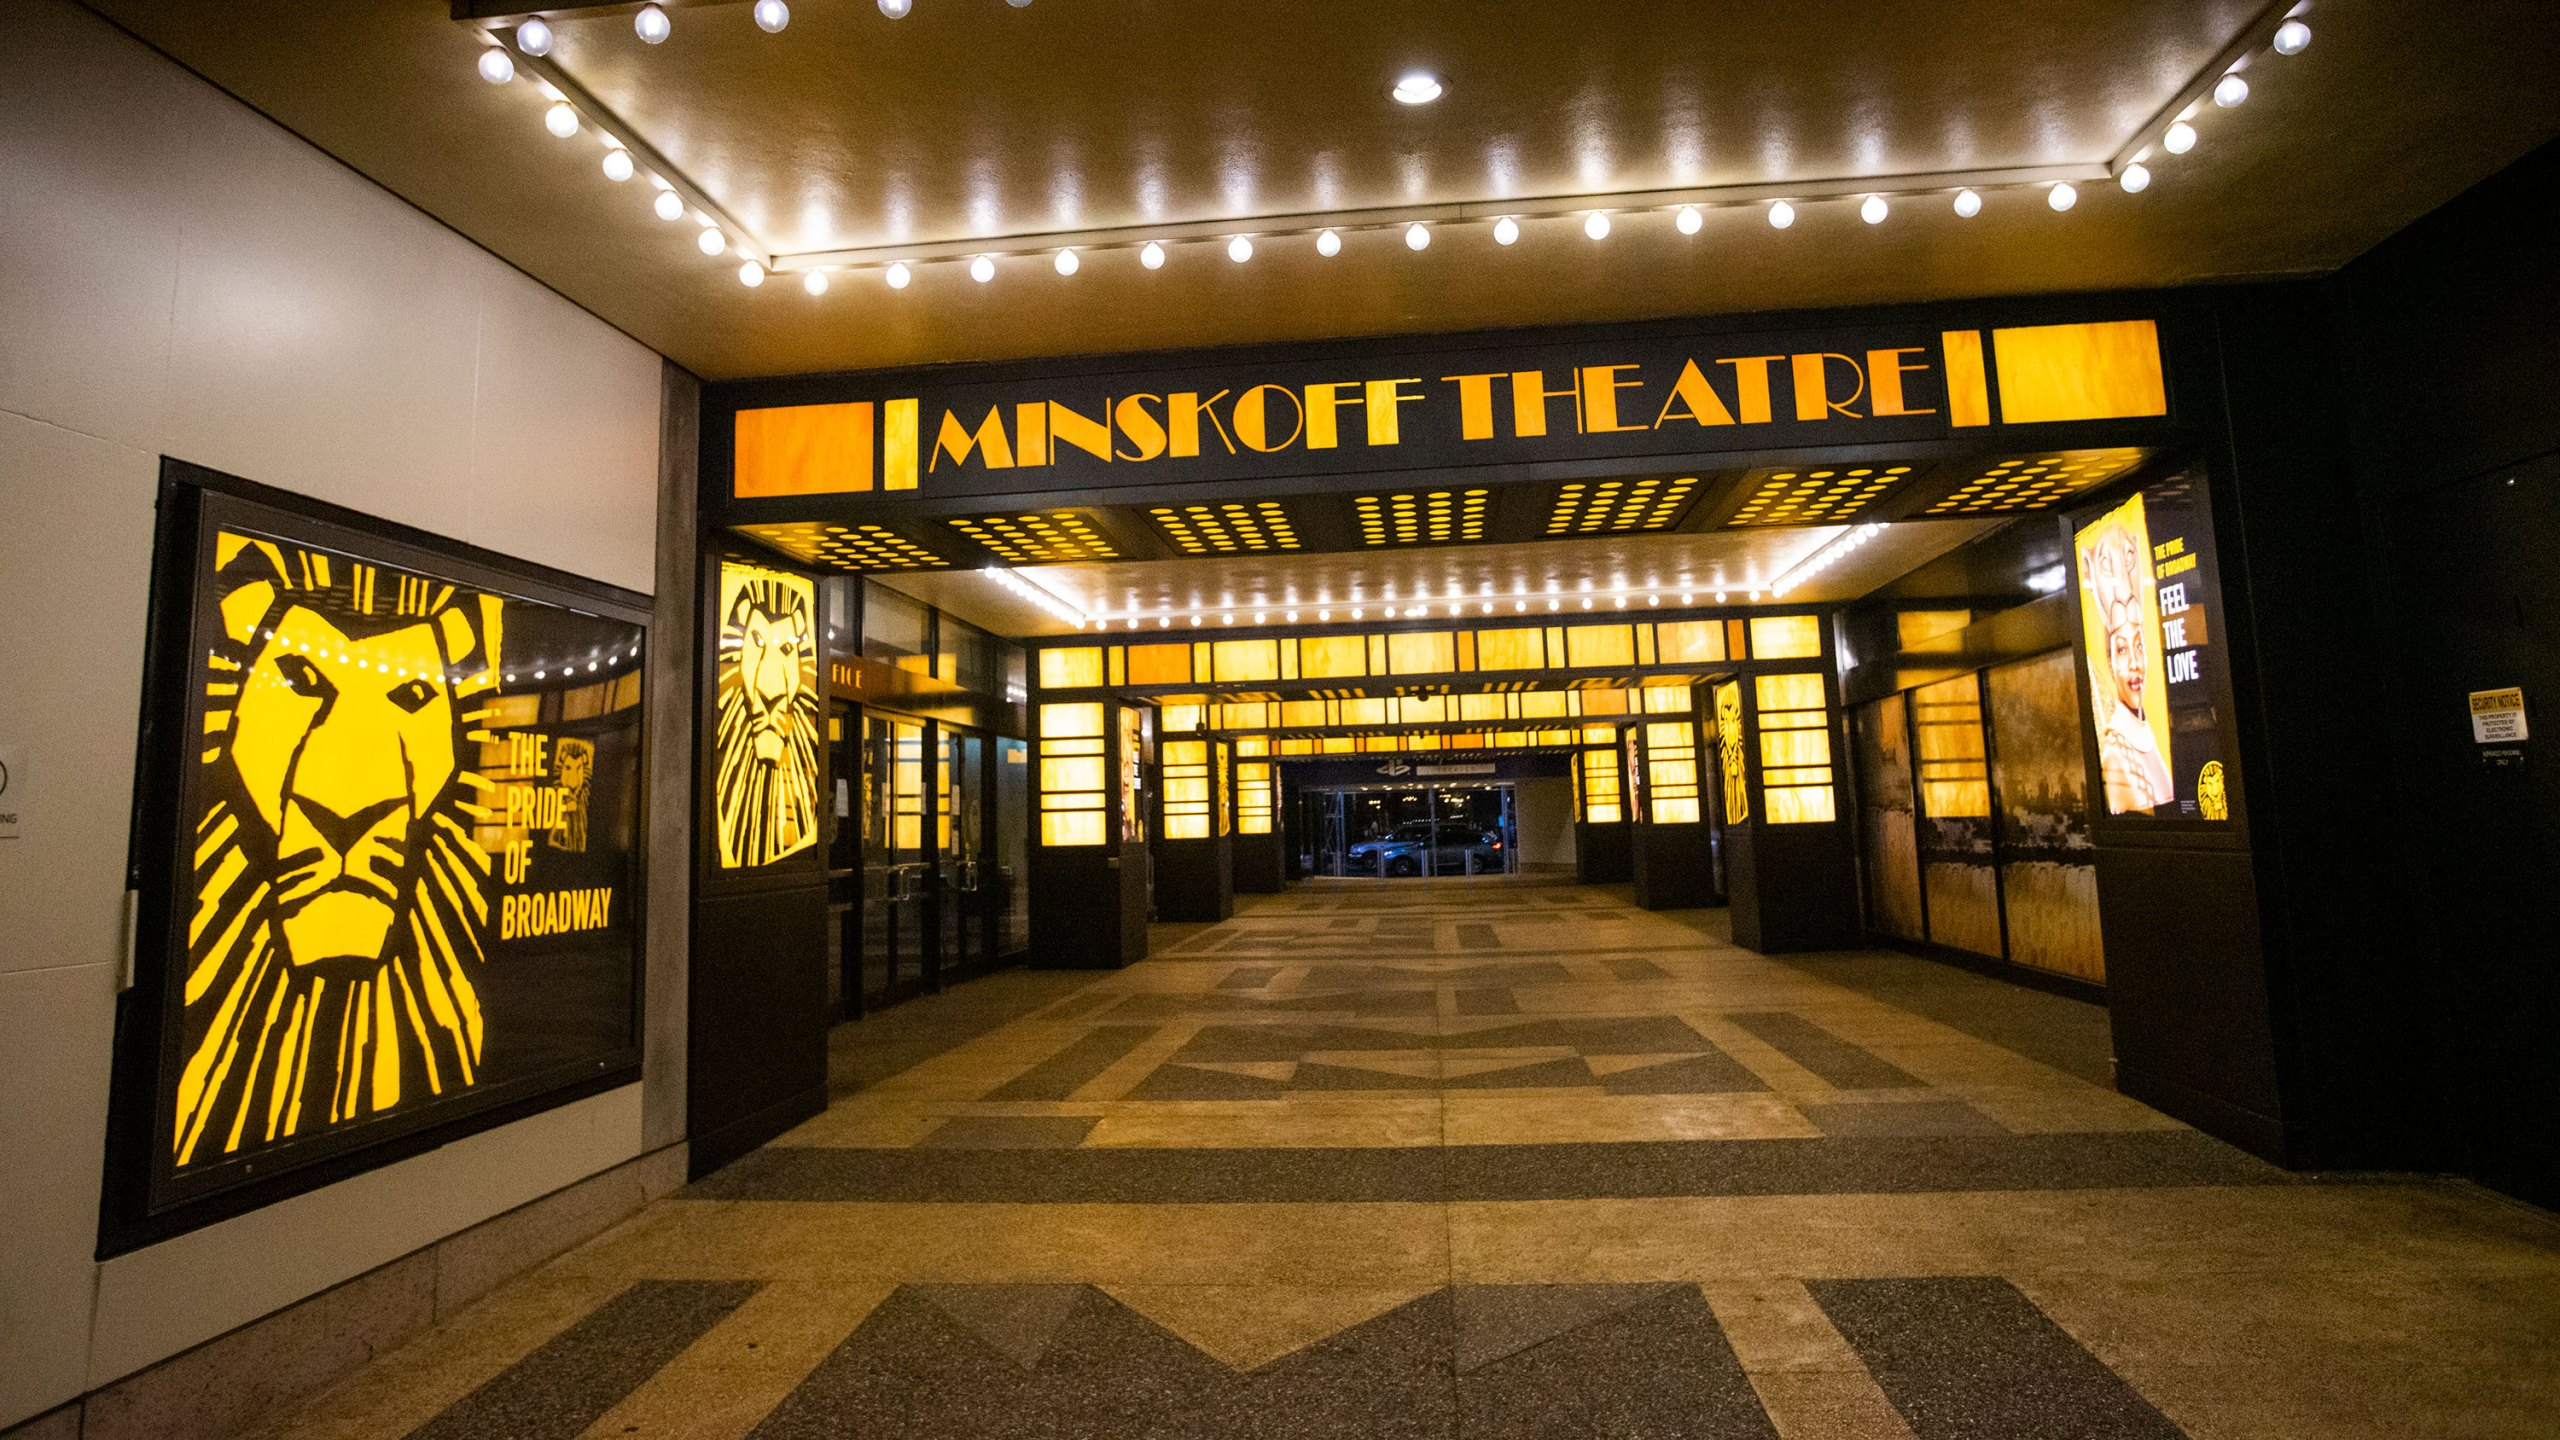 External view of a closed theater after New York cancelled all gatherings over 500 people due to COVID-19 on March 13, 2020 in New York City, NY. President Donald Trump declared a national state of emergency on Friday, more than 1,600 people have been tested positive for COVID-19 and 41 have died. (Eduardo Munoz/ VIEWpress via Getty Images)